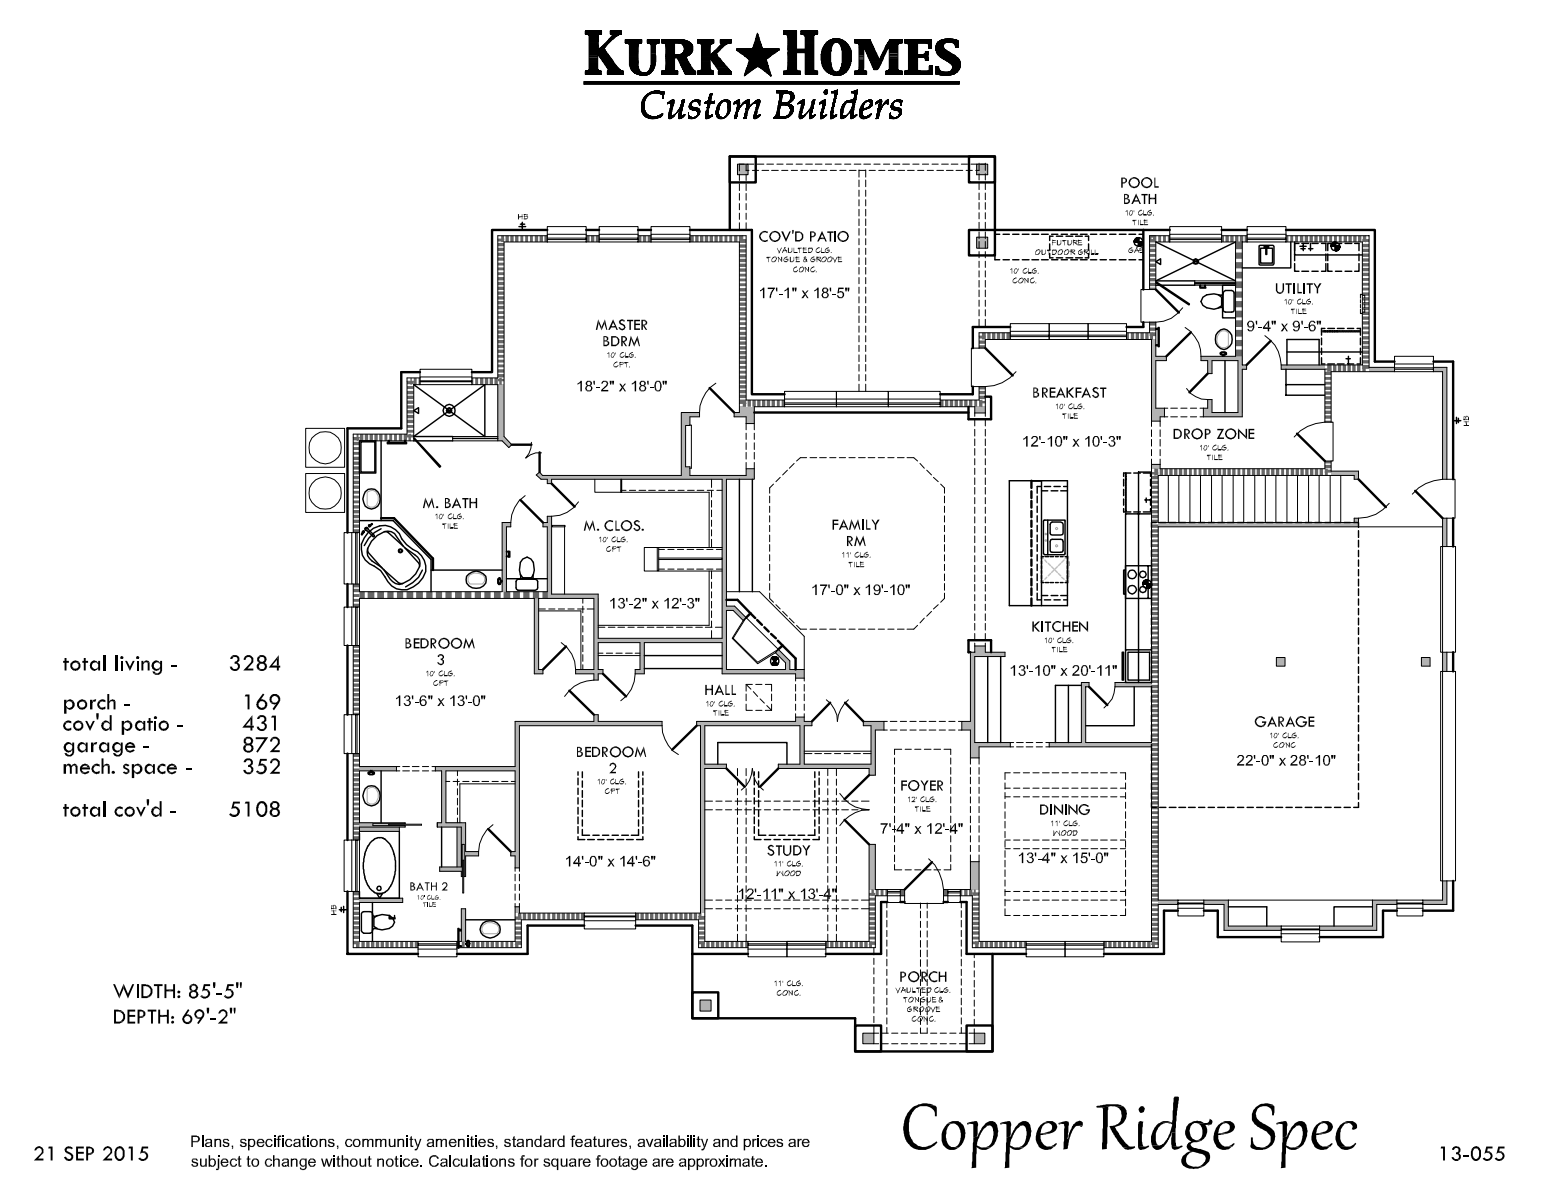 The Copper Ridge Model - Home Plan